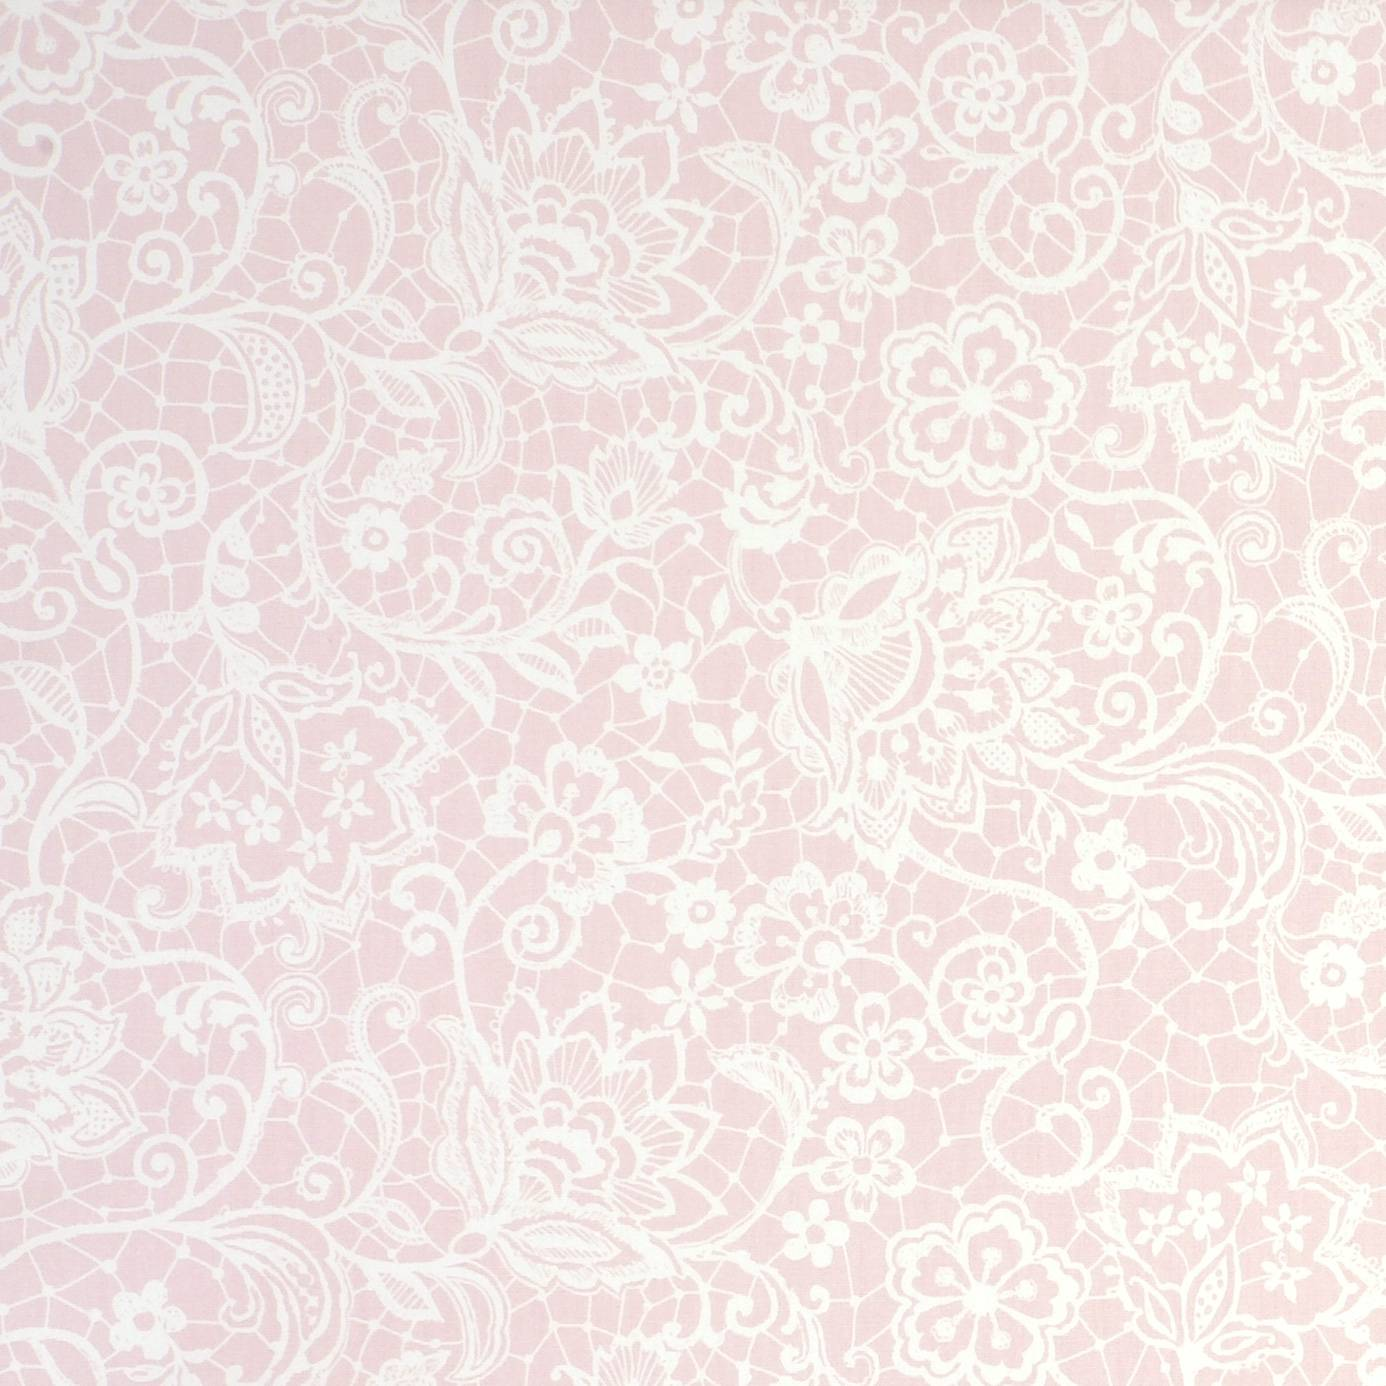 Lace Fabric - Pink (F0839/03) - Studio G Garden Party ...